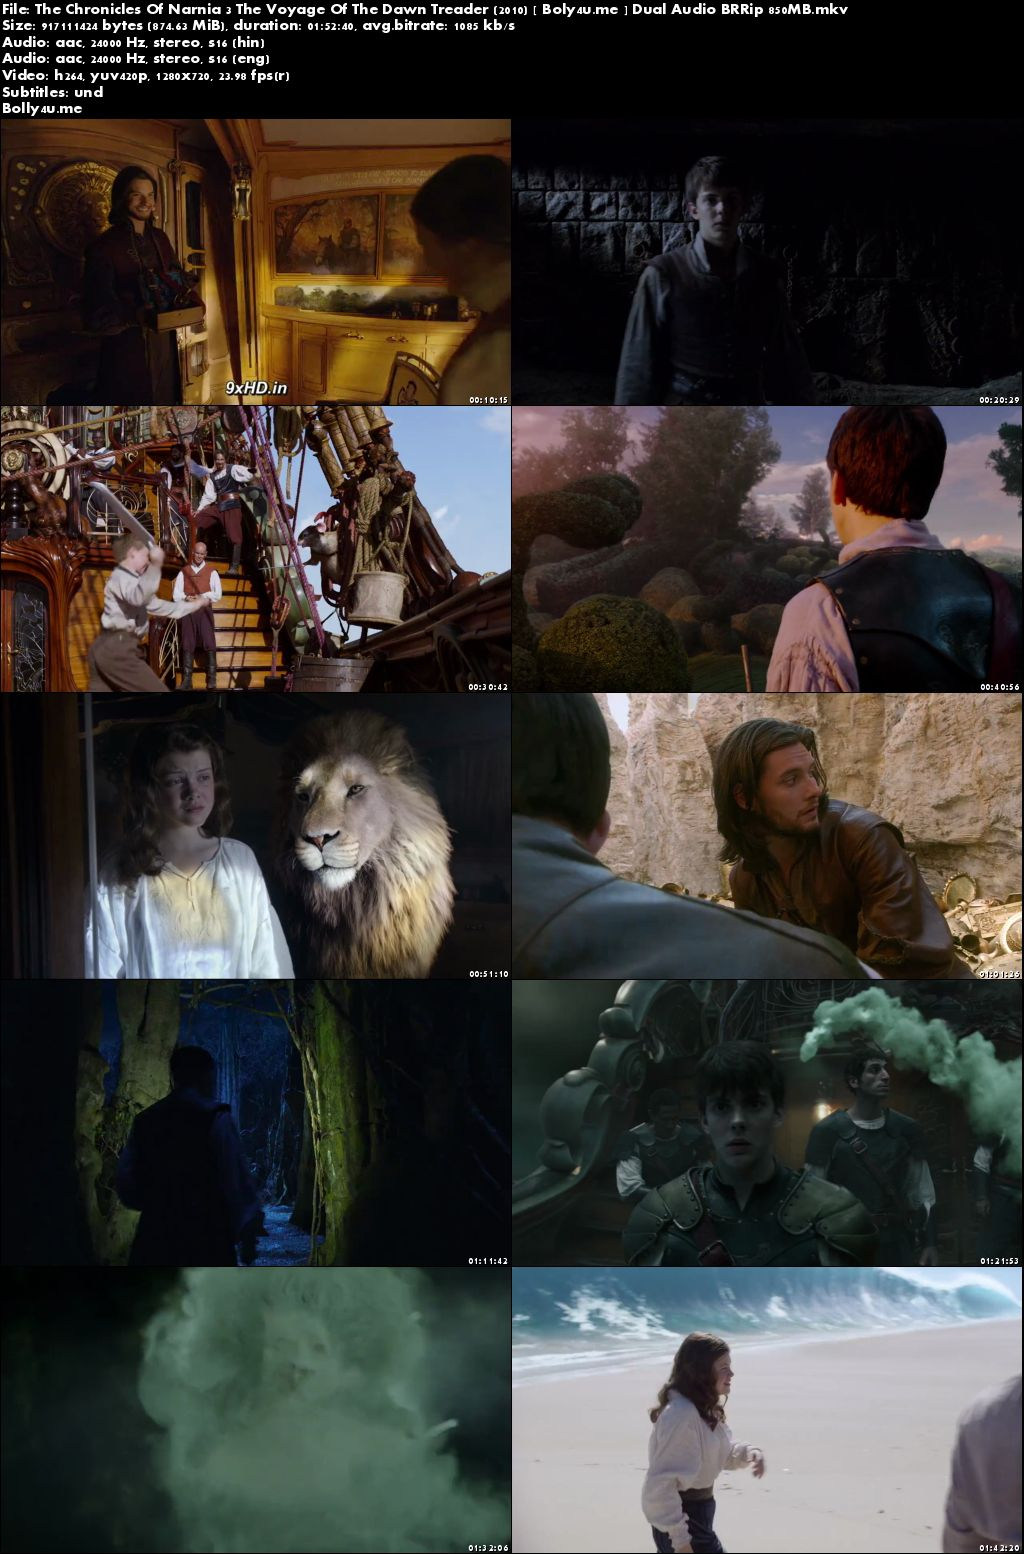 The Chronicles Of Narnia The Voyage Of The Dawn Treader 2010 BRRip 350MB Dual Audio 480p Download